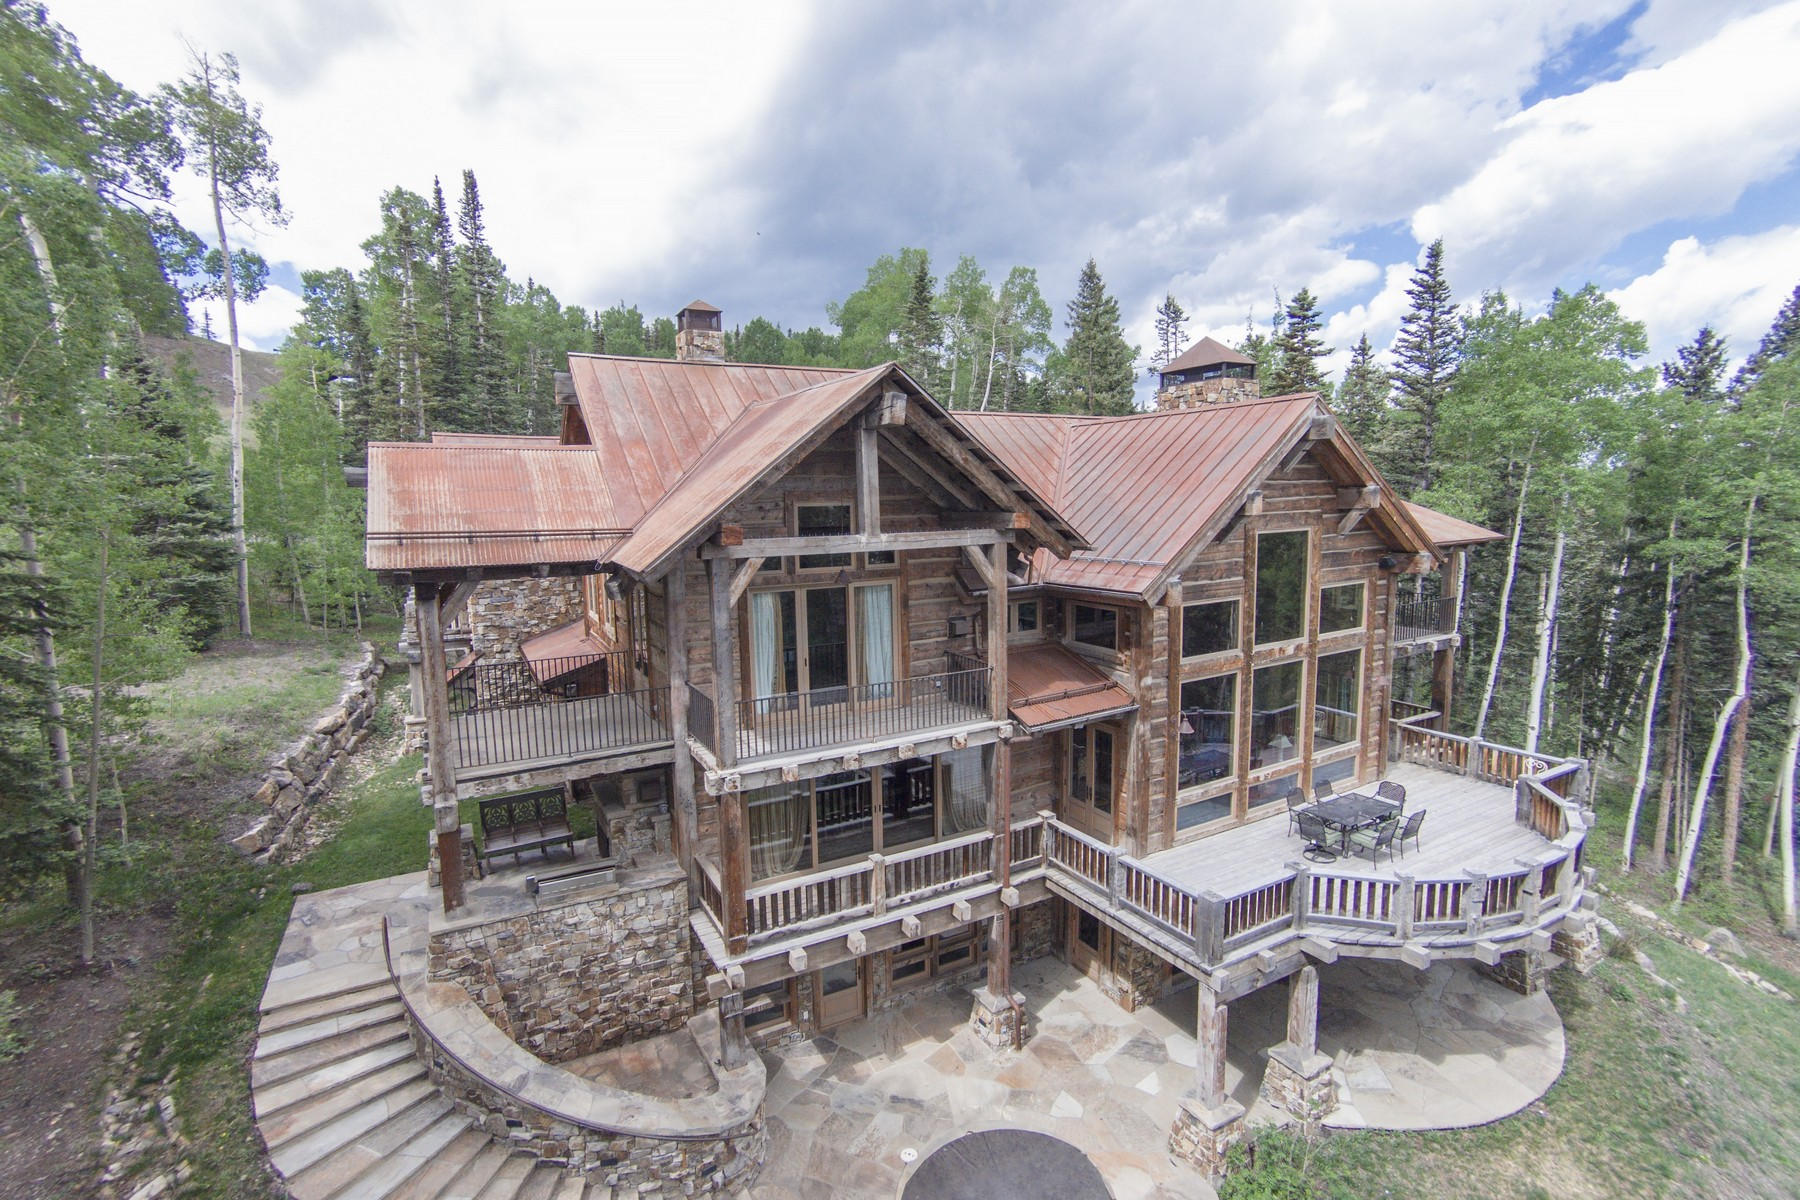 Single Family Home for Active at 274 Benchmark Drive 274 Benchmark Drive Mountain Village, Colorado 81435 United States